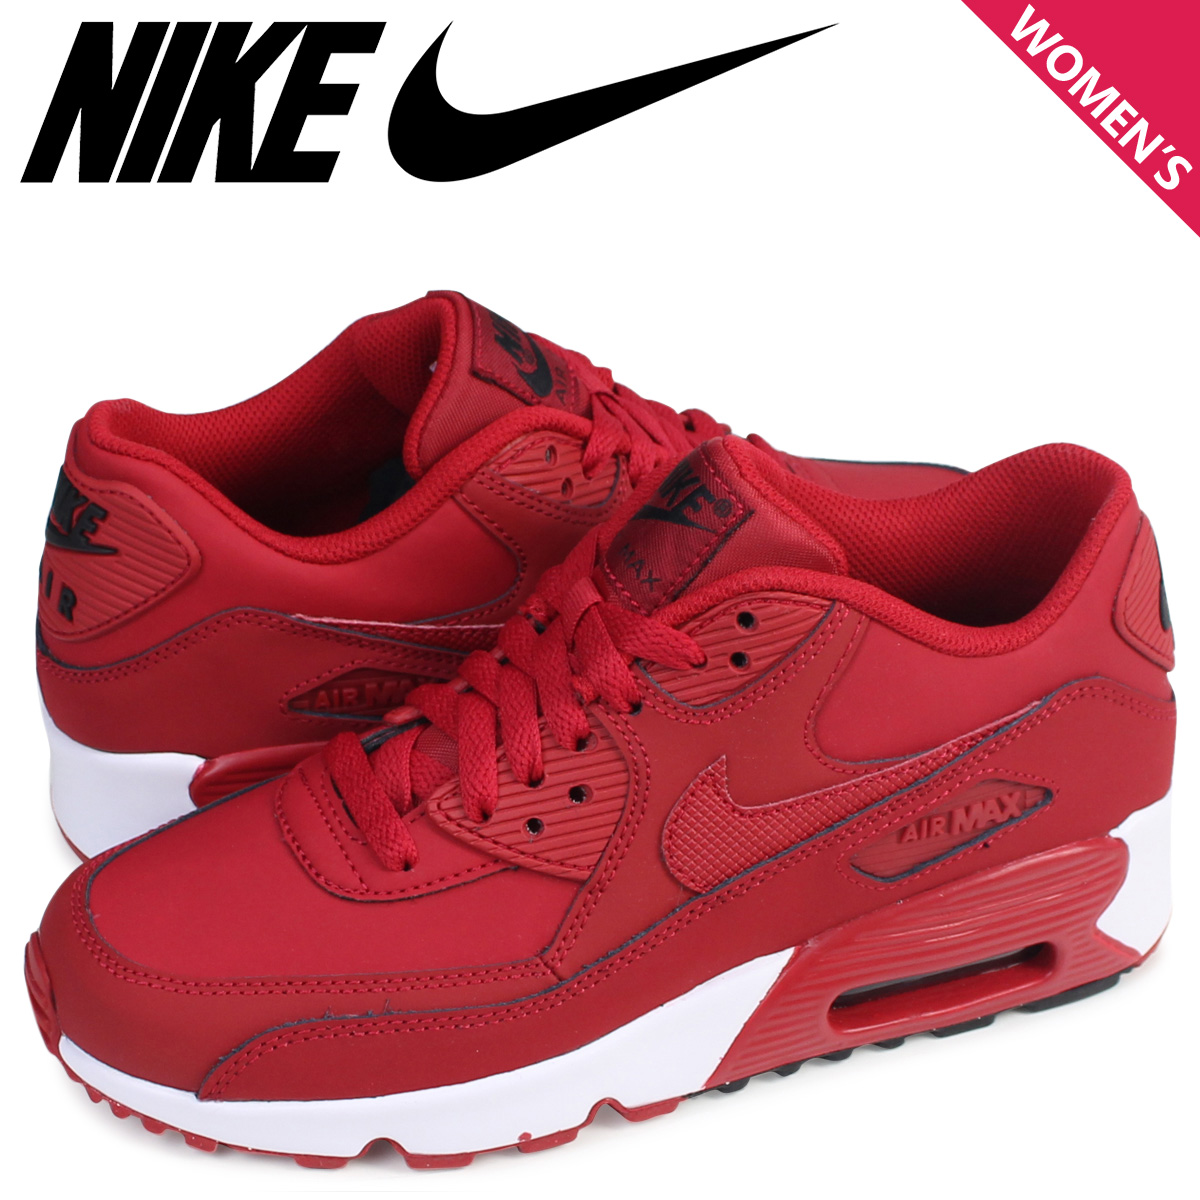 NIKE Kie Ney AMAX 90 Lady's sneakers AIR MAX 90 LEATHER GS 833,412 600 shoes red red